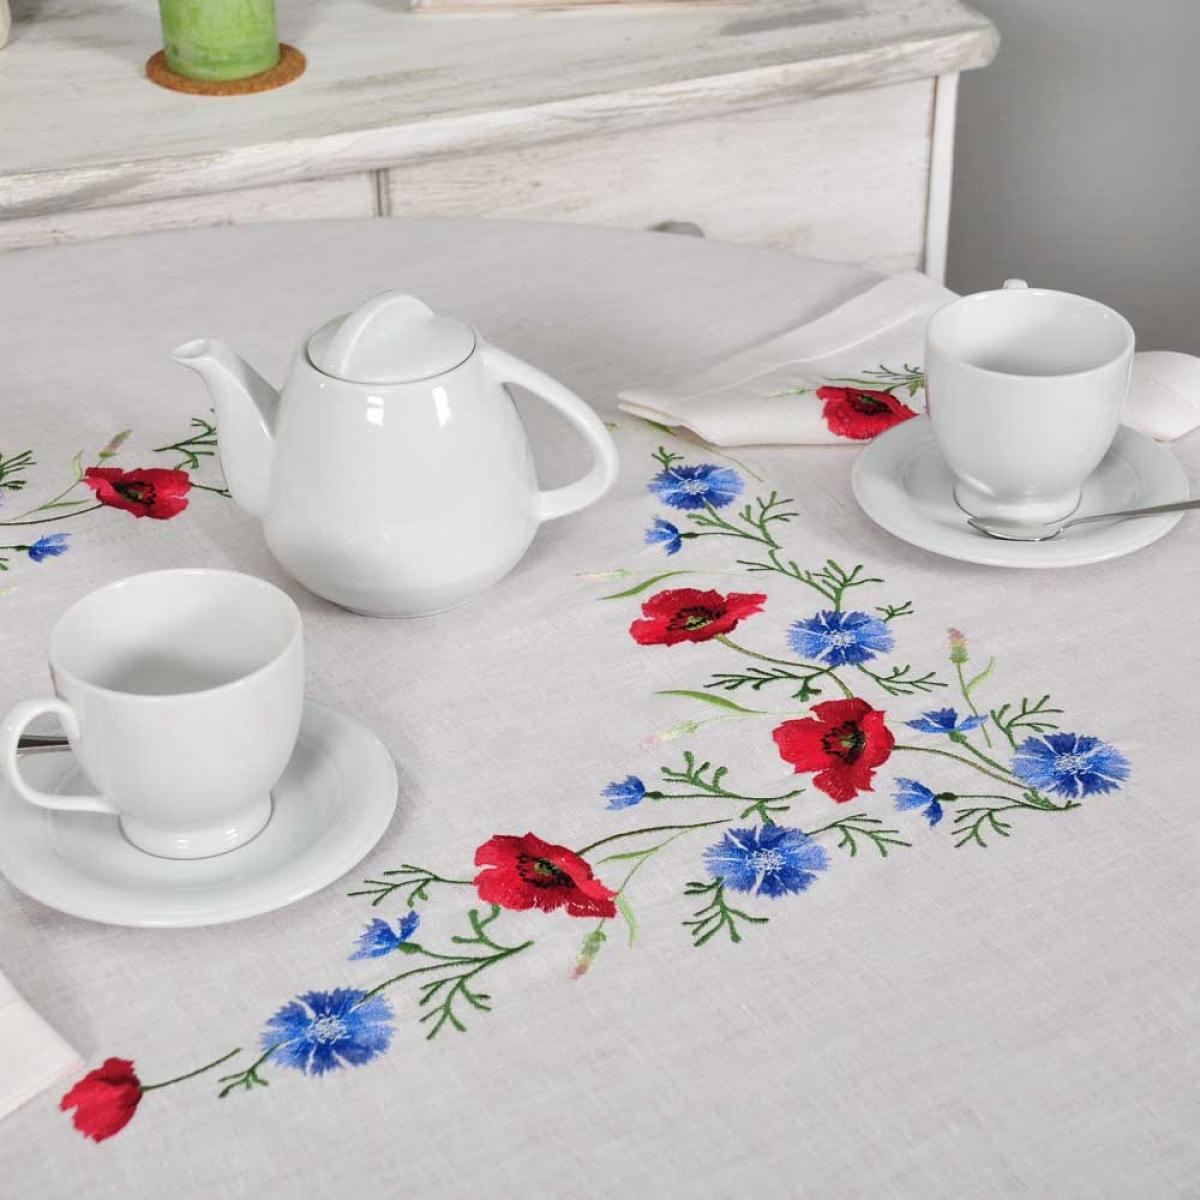 Tablecloth Poppies with cornflowers 90*90